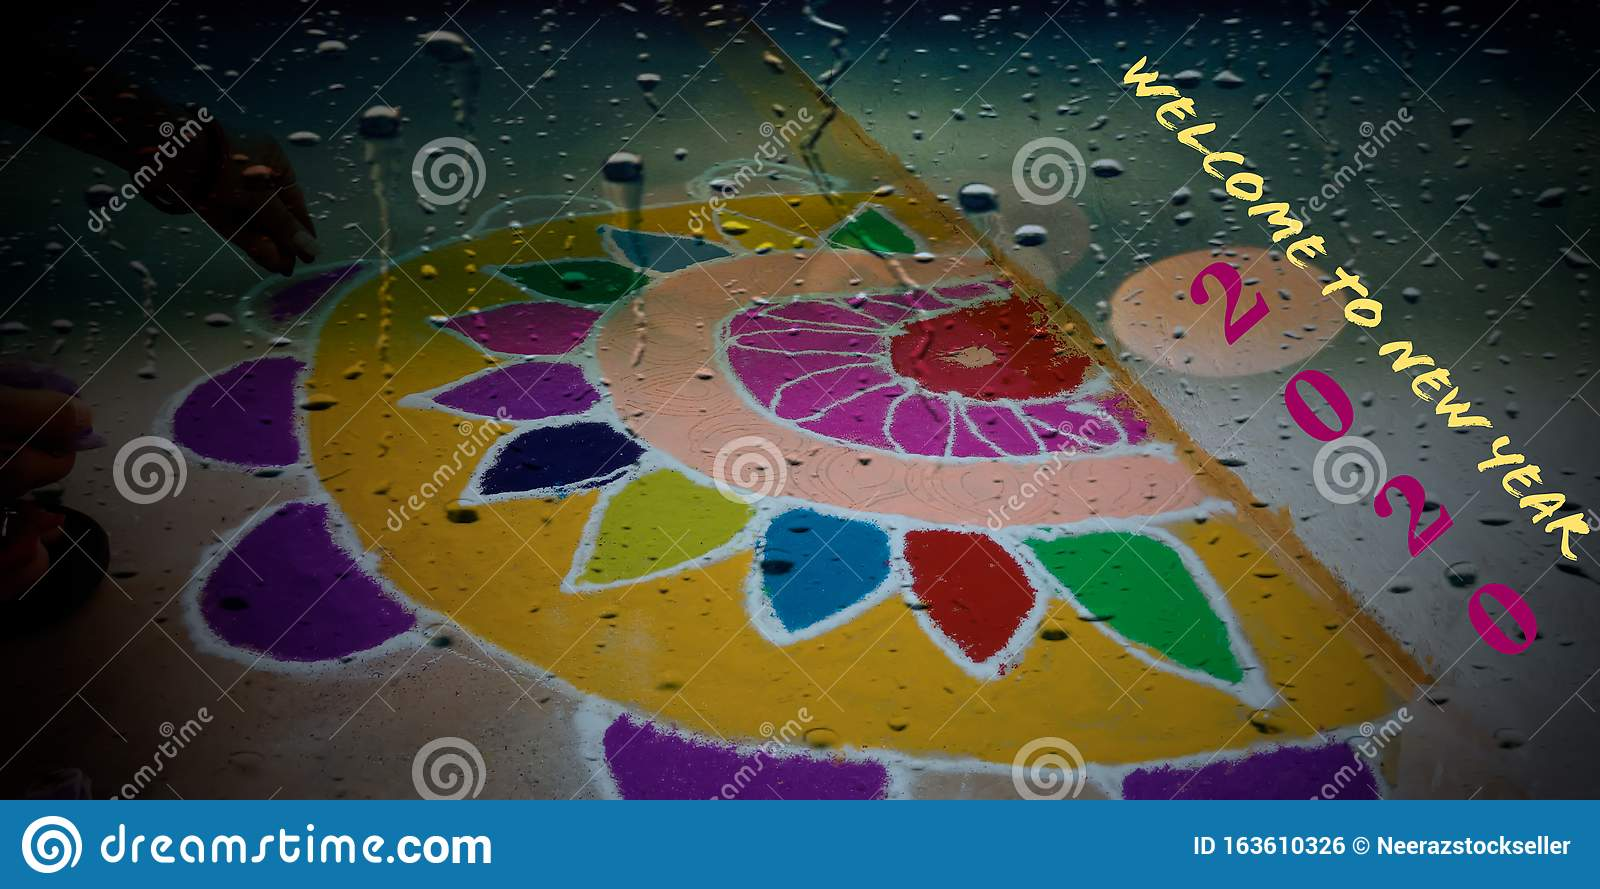 welcome to new year 2020 words presented with rangoli design art water drops abstract stock illustration illustration of concept 2020 163610326 https www dreamstime com welcome to new year words presented rangoli design art water drops abstract festival celebrate indian religious detail coming image163610326